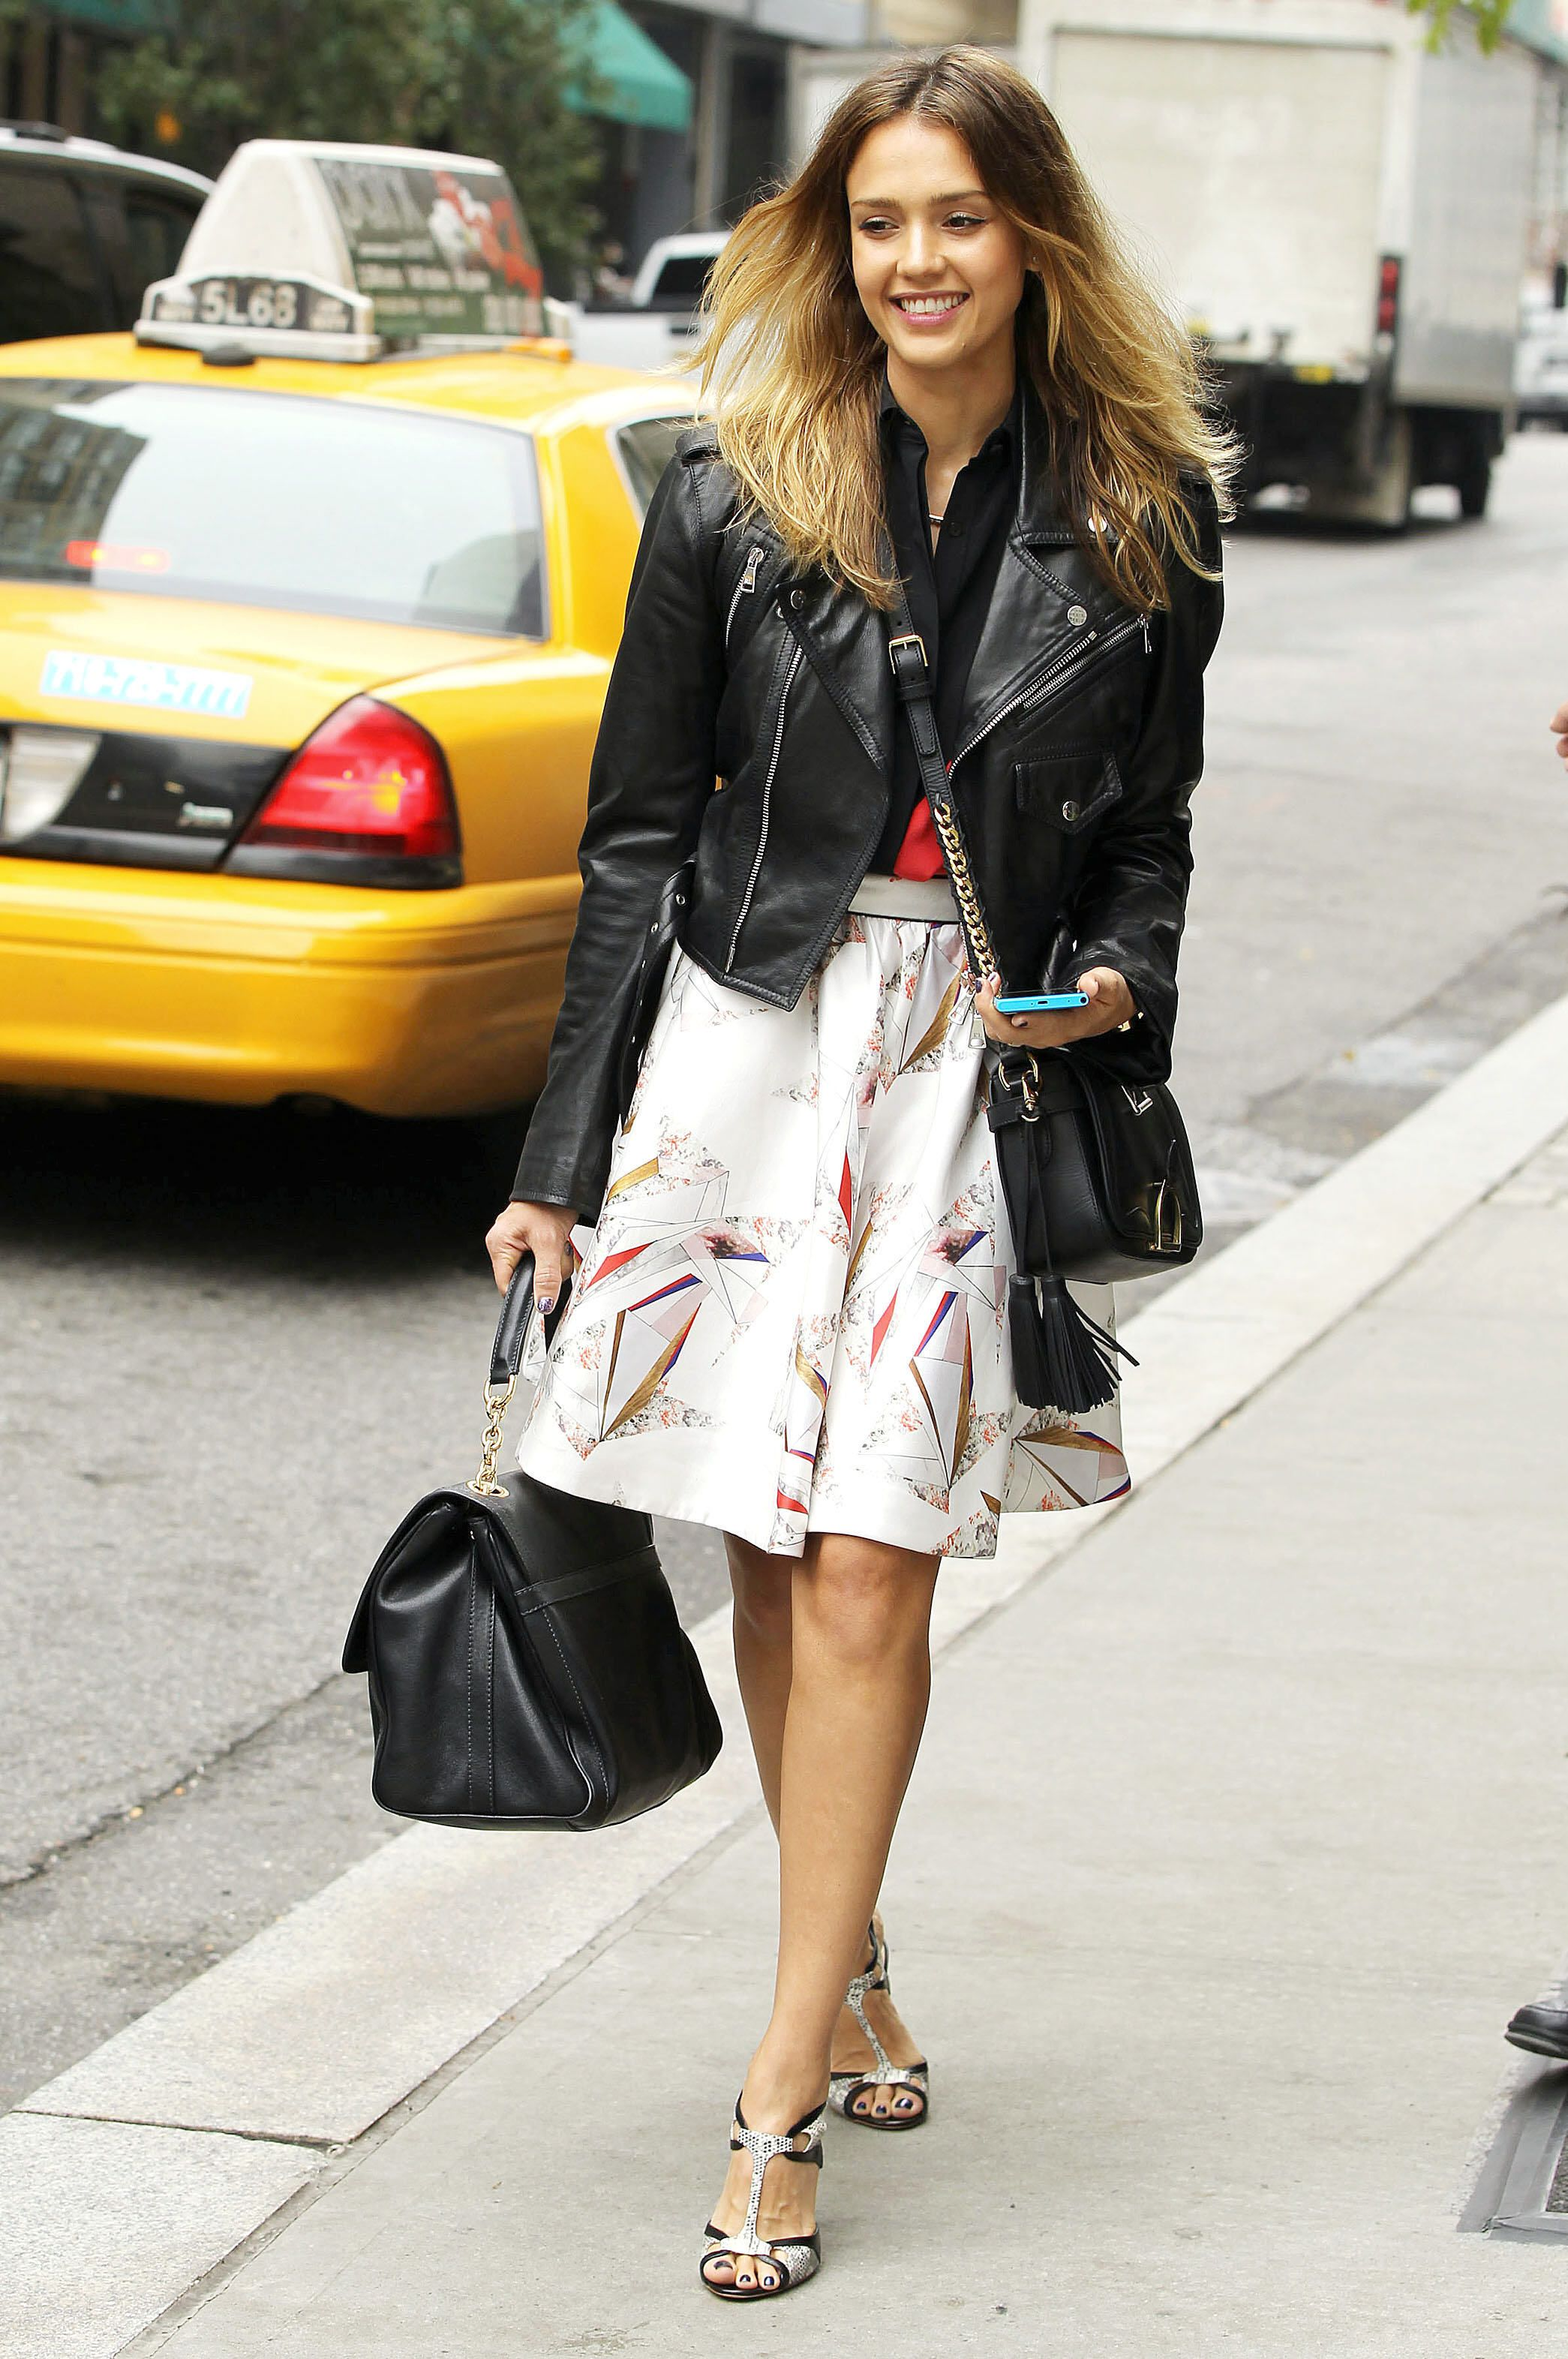 11dab91b1f Jessica Alba, black leather jacket, printed skirt, black cross-body bag,  color-block sandals ☑️